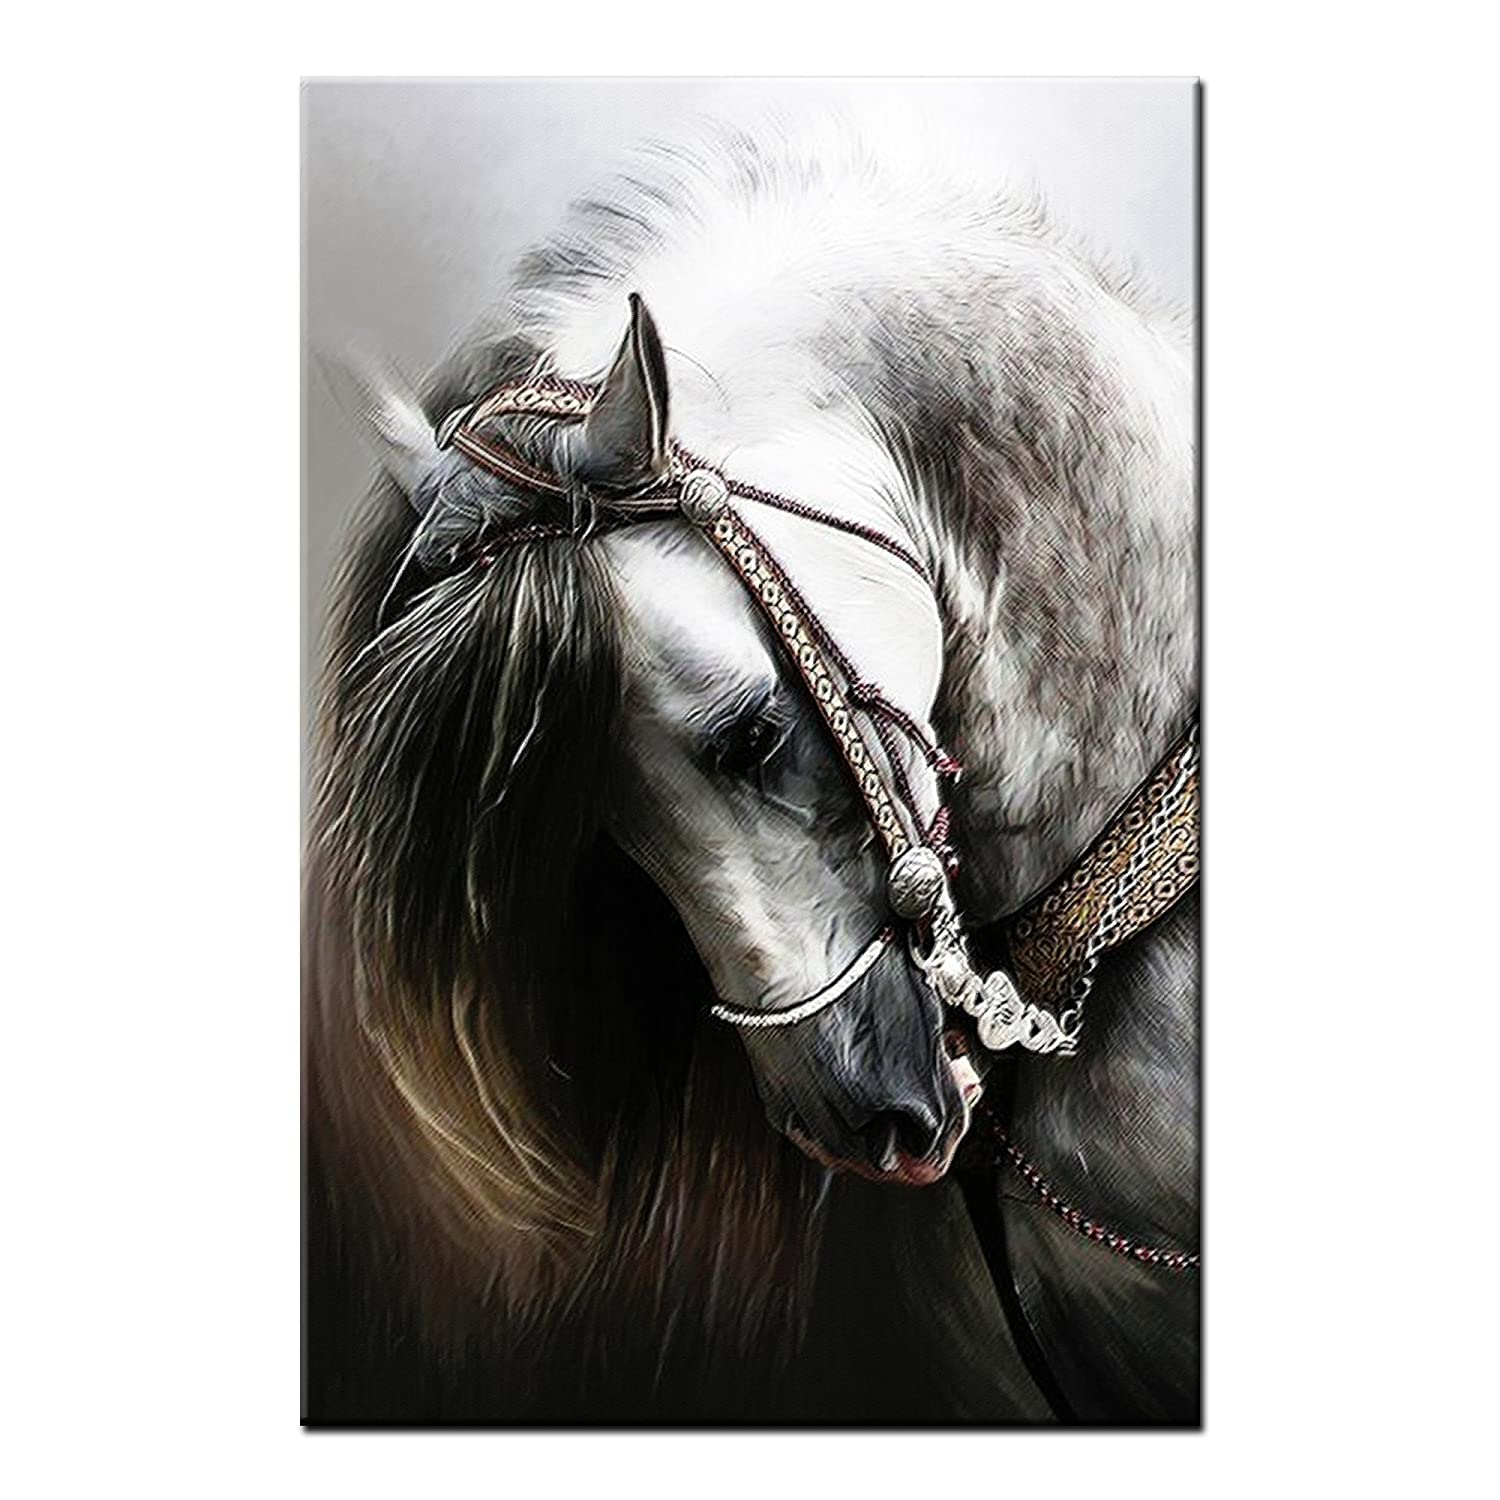 Framed Animal Canvas Art Prints Horse Head Wall Art Canvas Painting Print For Living Room Home Decoration Large